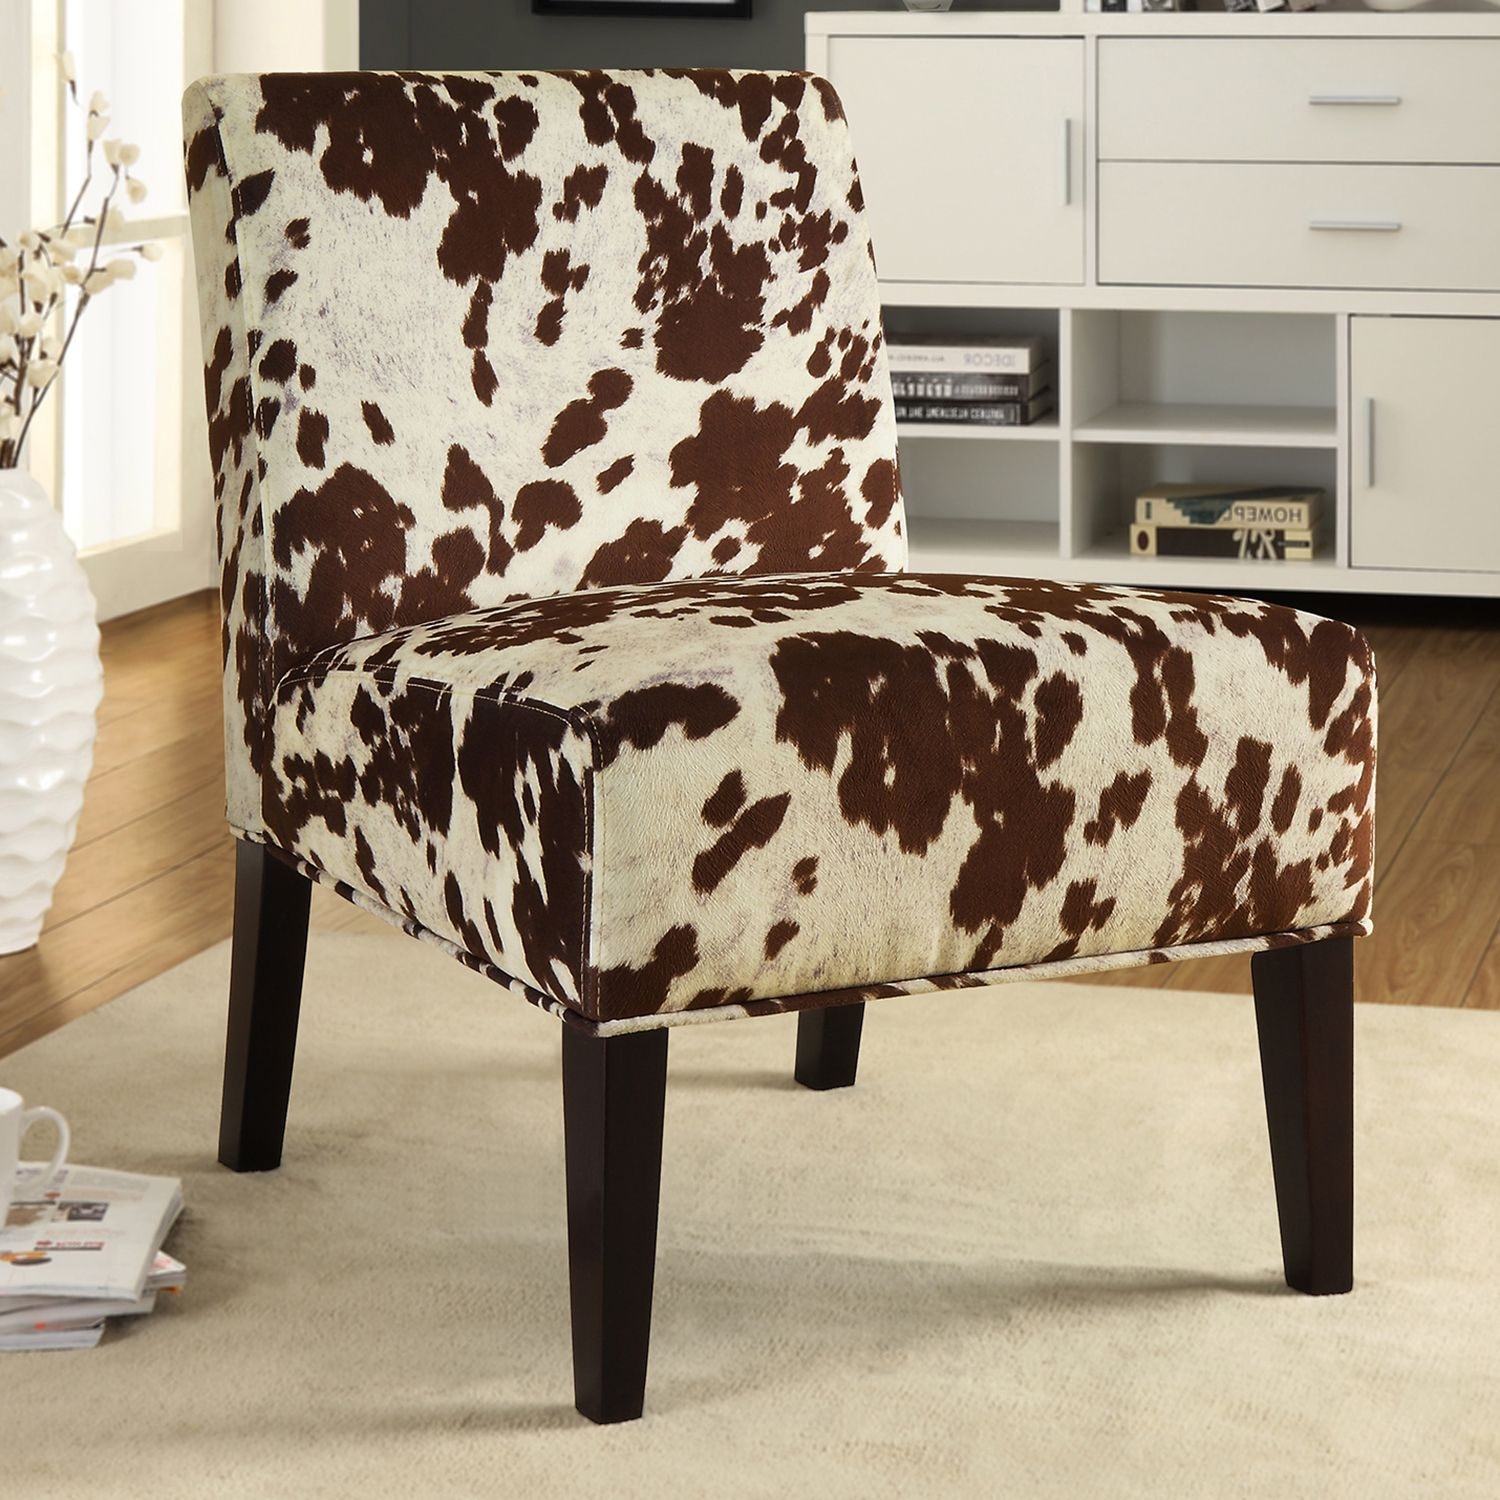 Peterson Cowhide Fabric Slipper Accent Chair by iNSPIRE Q Bold by